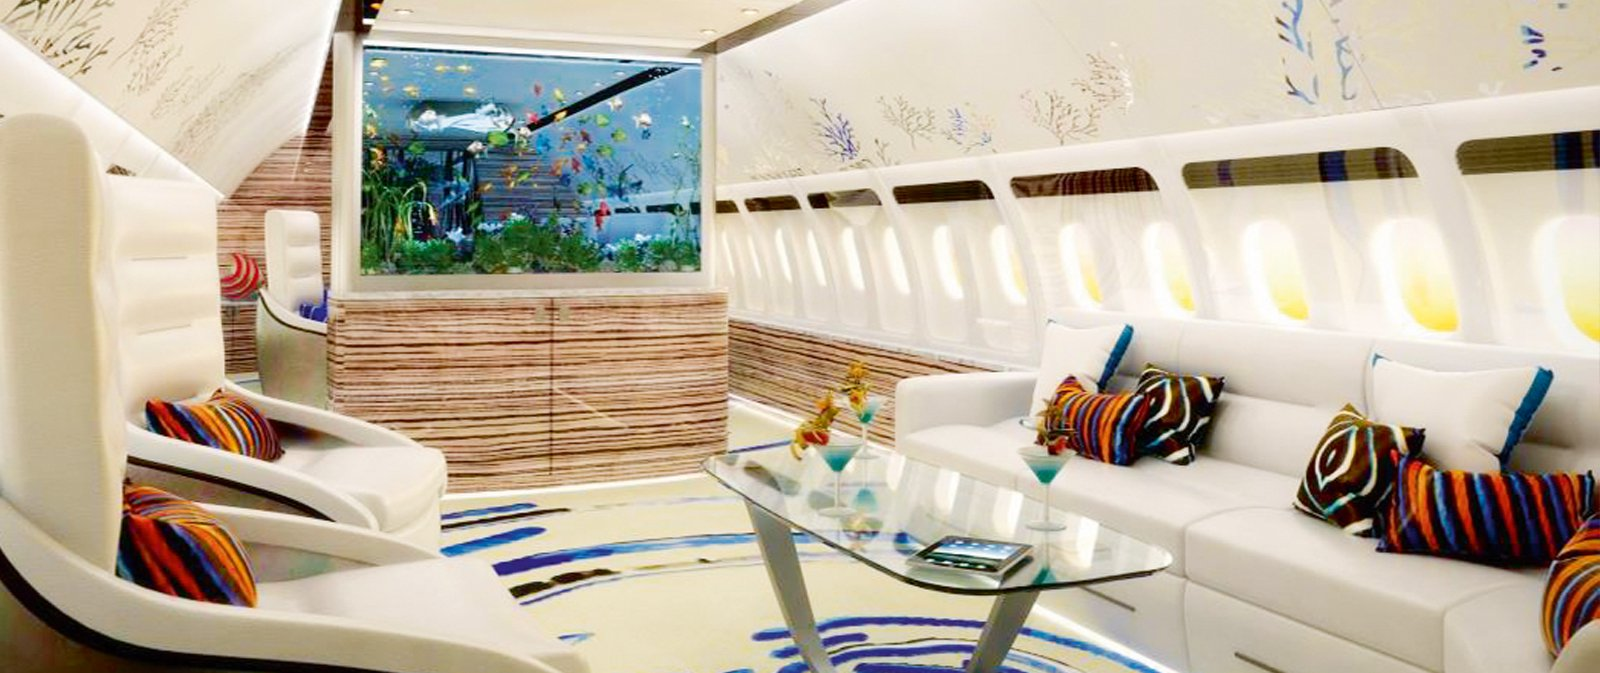 Luxury companies can help to make more adventurous interiors a reality. Image: Airjet Designs